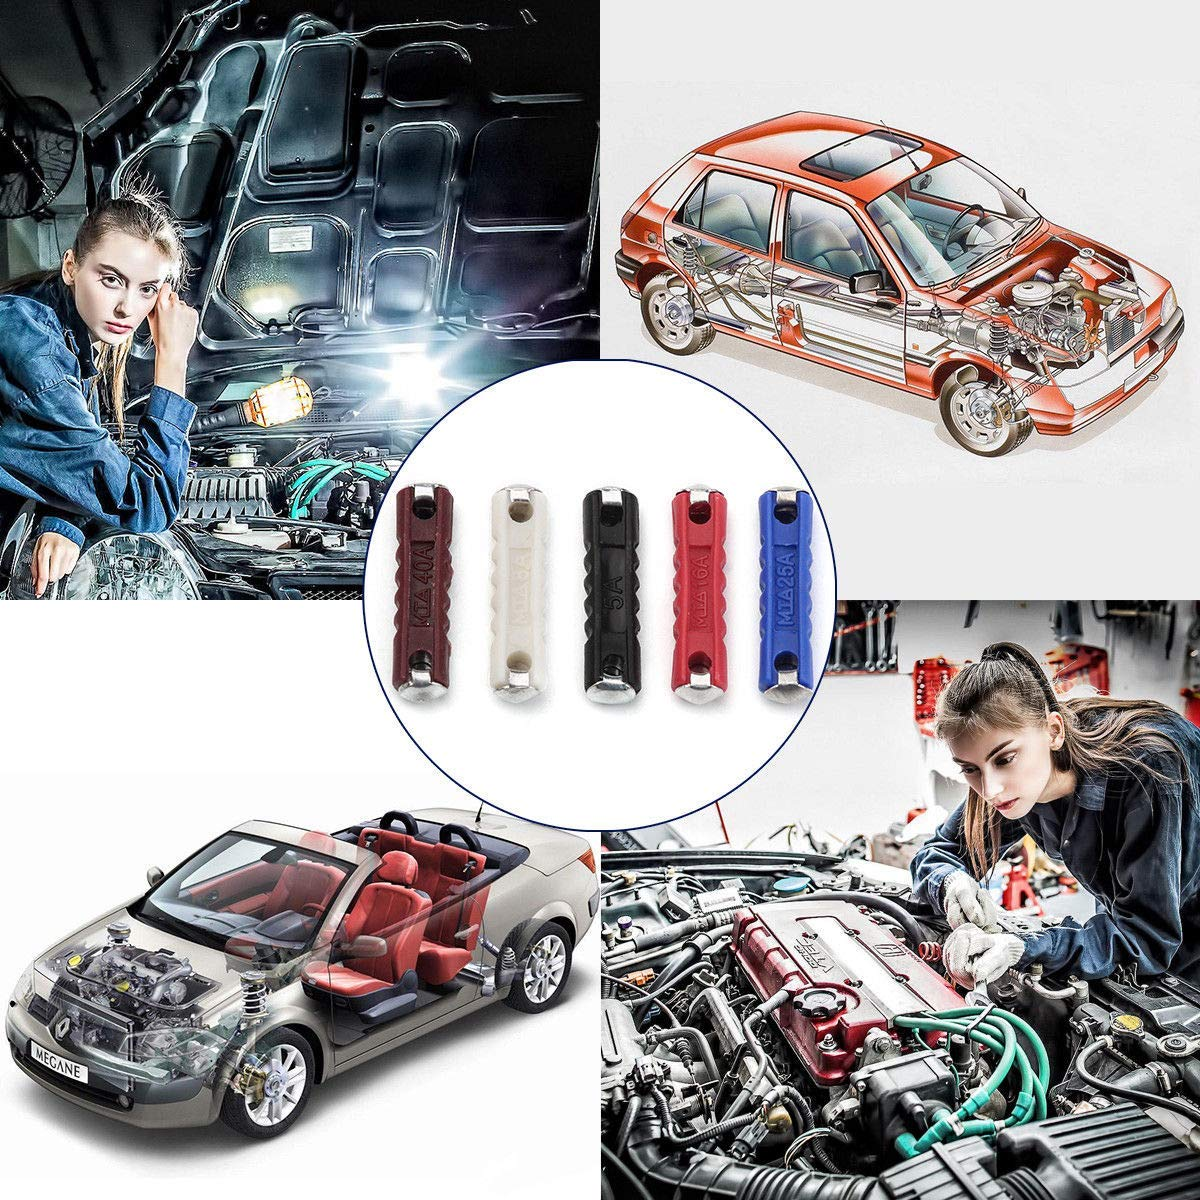 200 pcs Continental Car Fuses Fuses Replacement Kit Box Torpedo Type Sets For Vintage Classic Cars Old Style